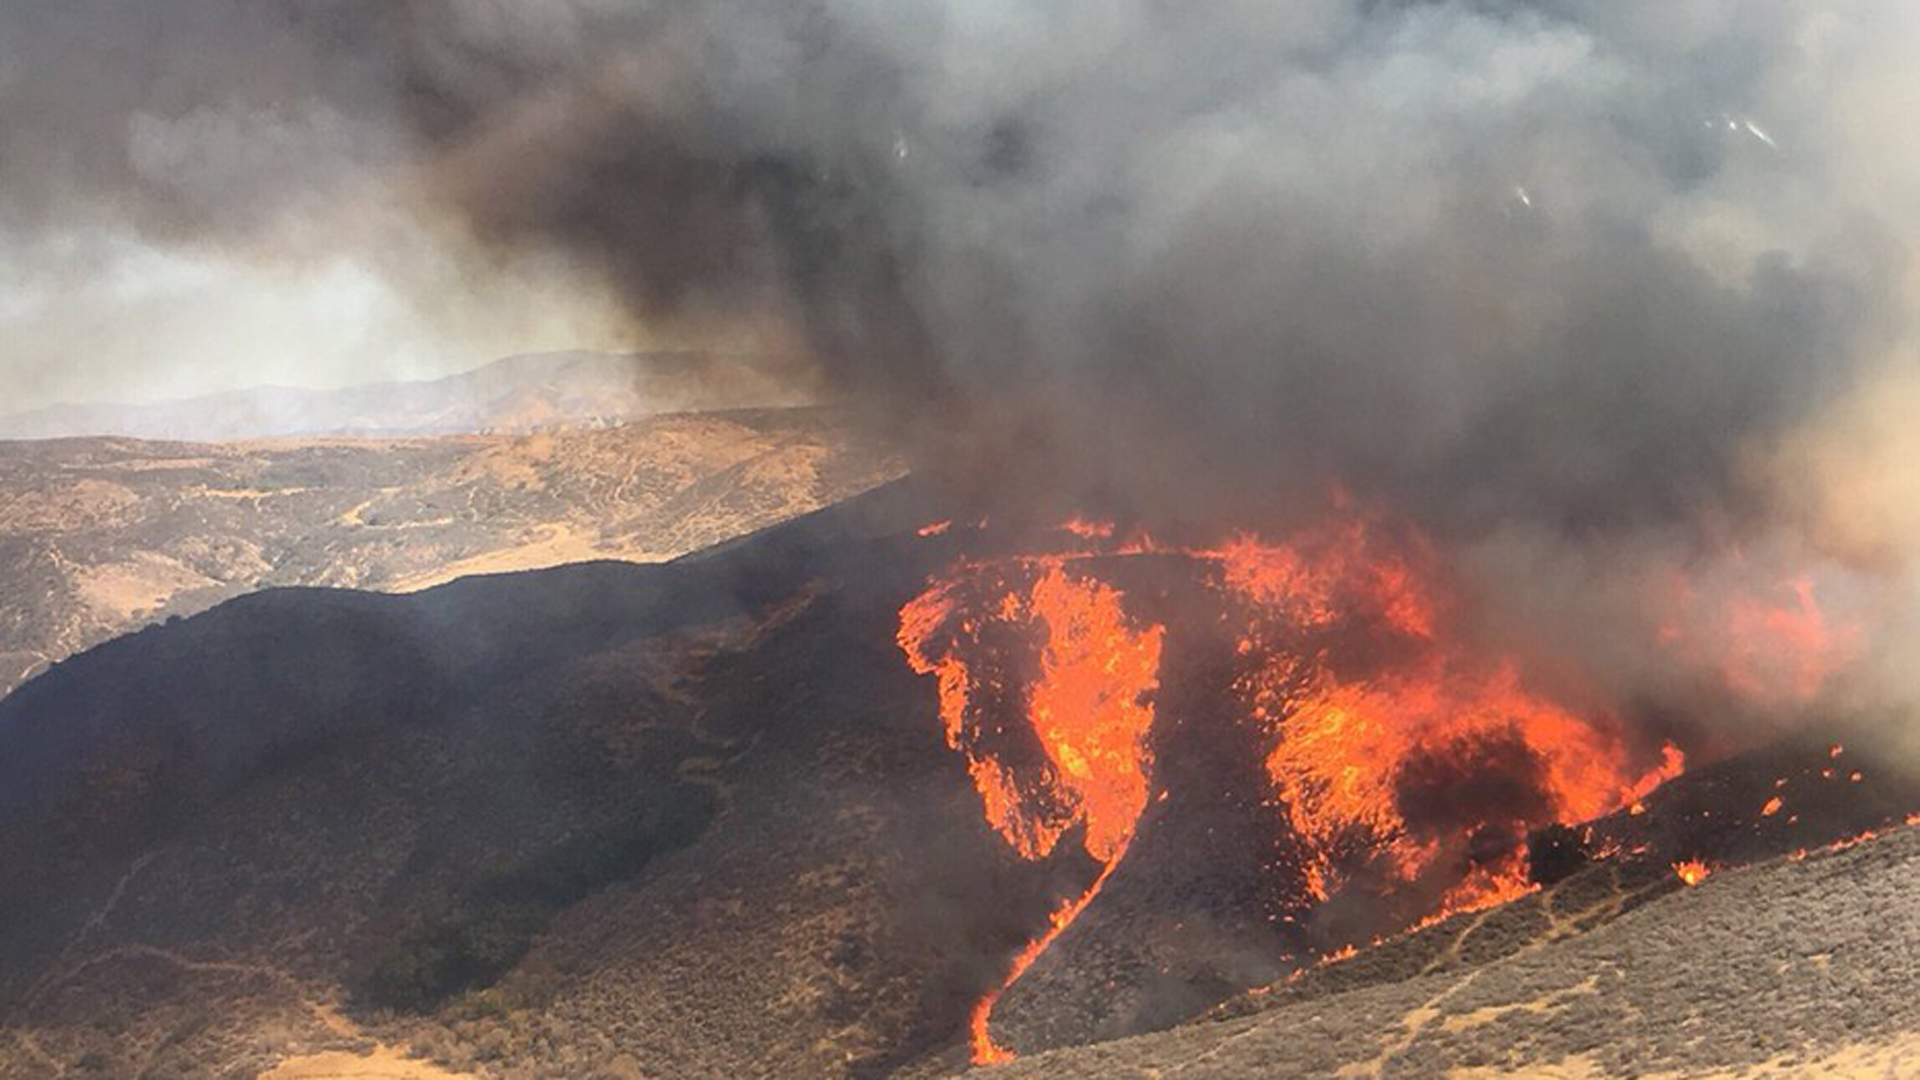 The Charlie Fire ignited near Castaic on Sept. 22, 2018. (Credit: Los Angeles County Fire Department Air Operations)